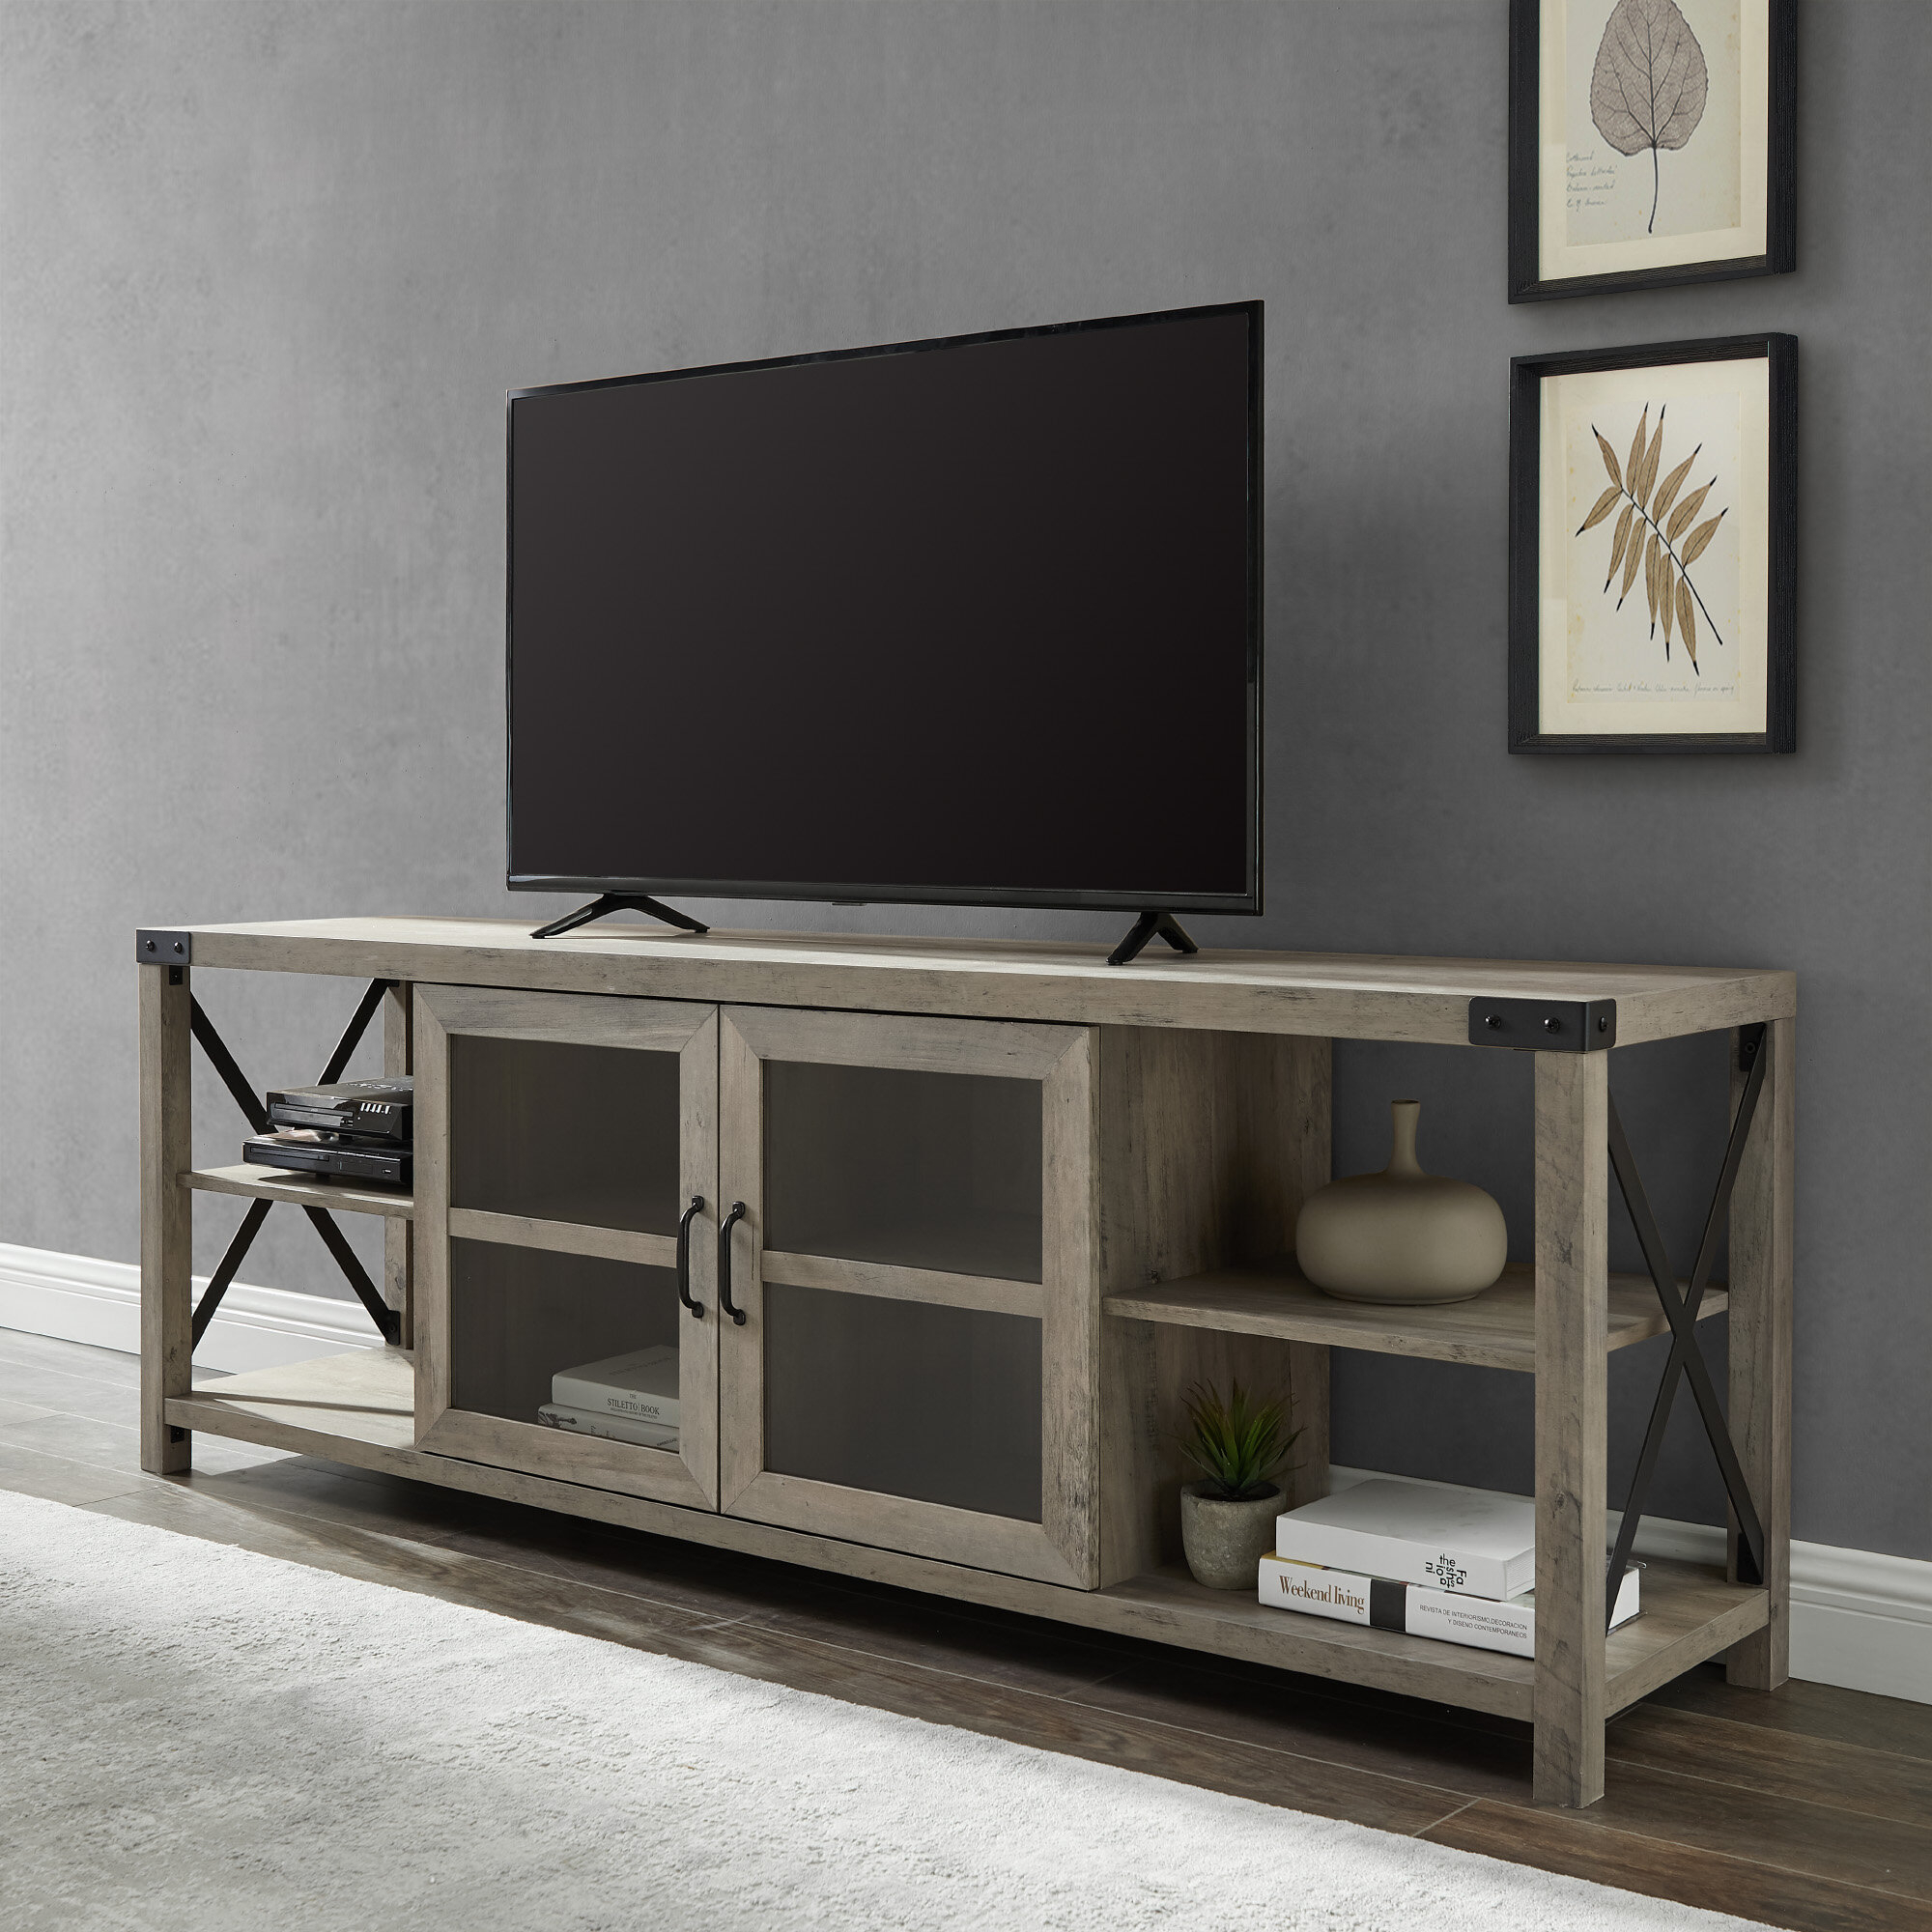 "Buffet Tv Stand | Wayfair.ca inside Colefax Vintage Tv Stands For Tvs Up To 78"" (Image 6 of 30)"